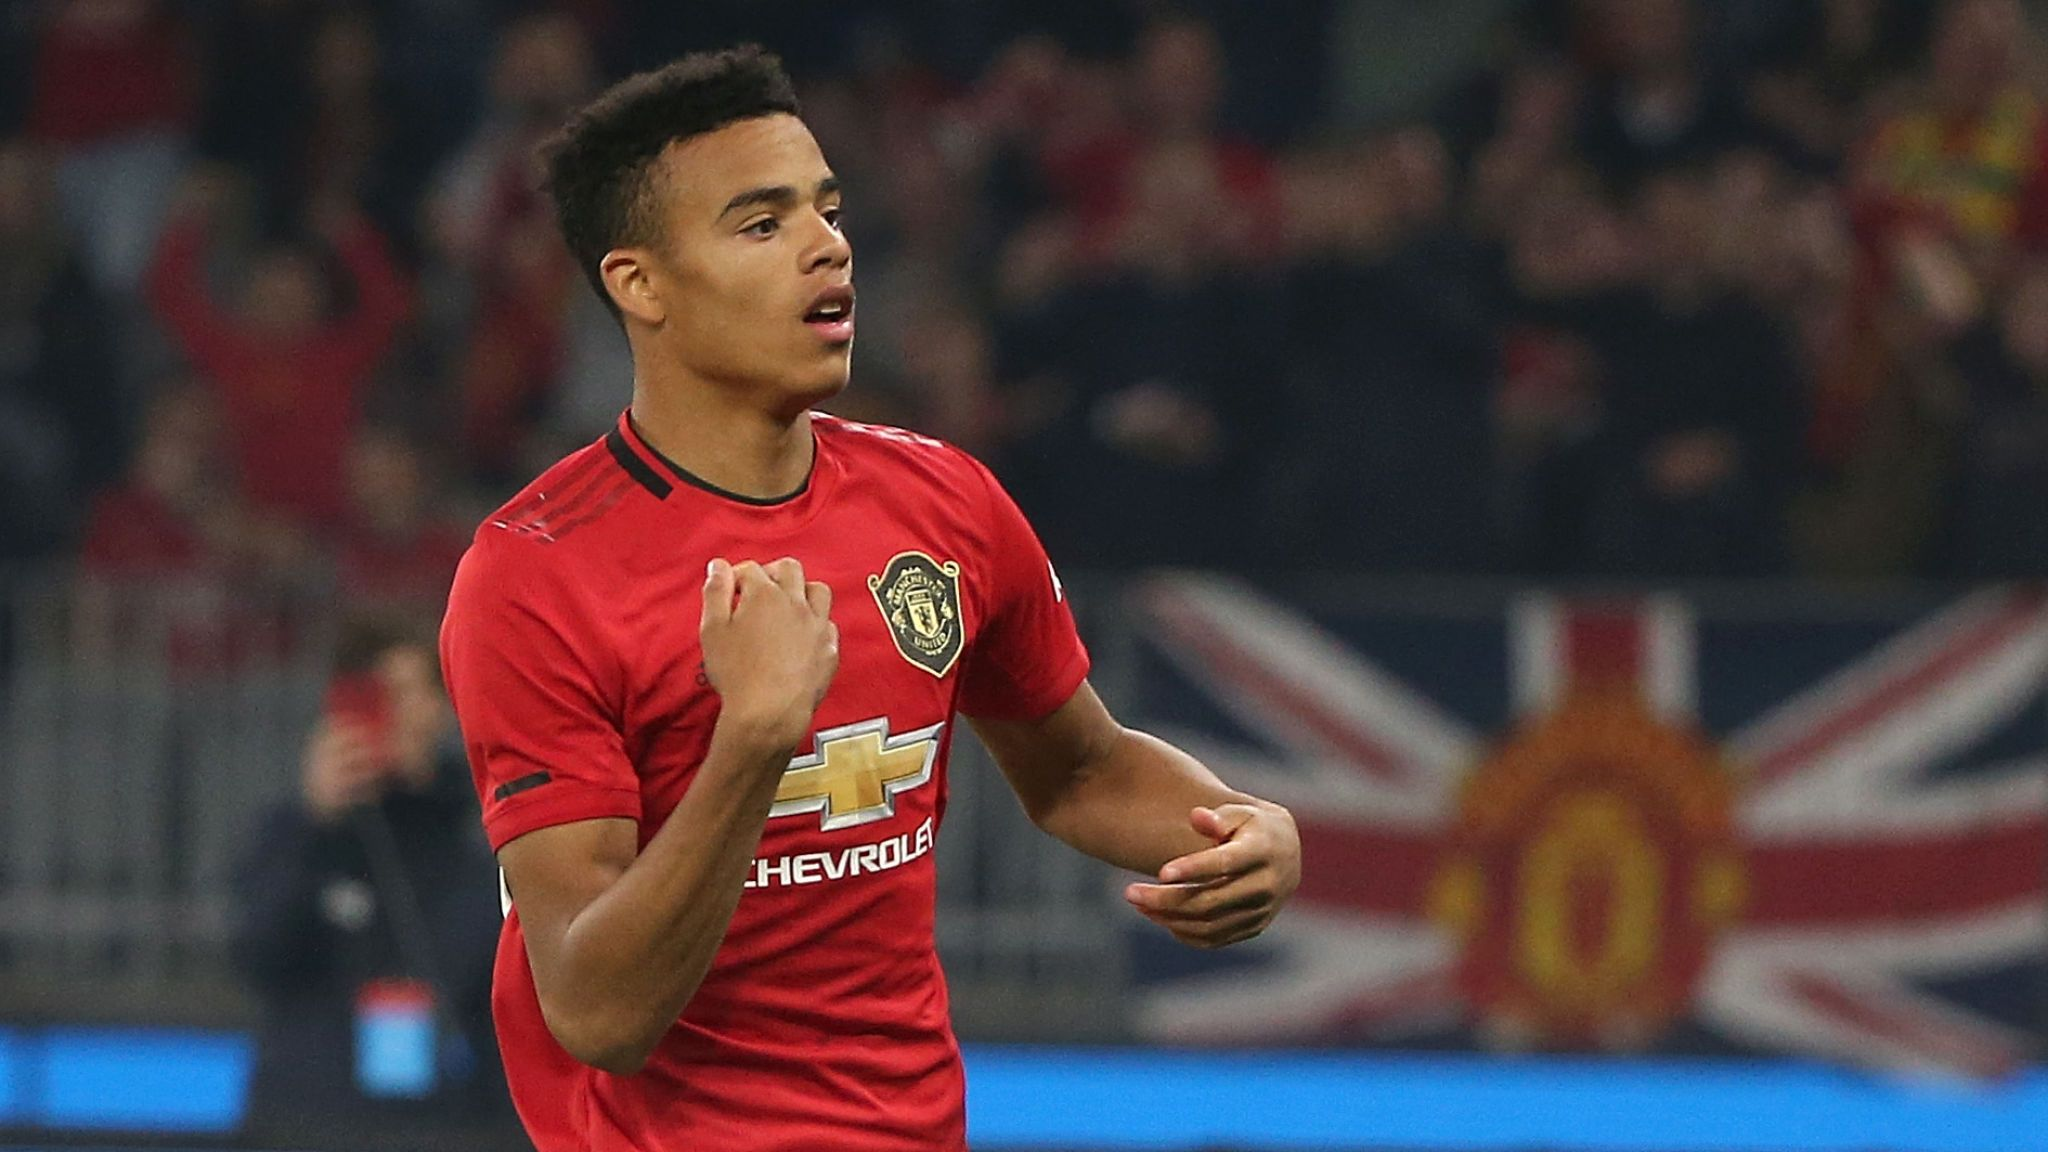 Mason Greenwood, Rhian Brewster... Five potential breakout Premier League stars in 2019/20 - Bóng Đá